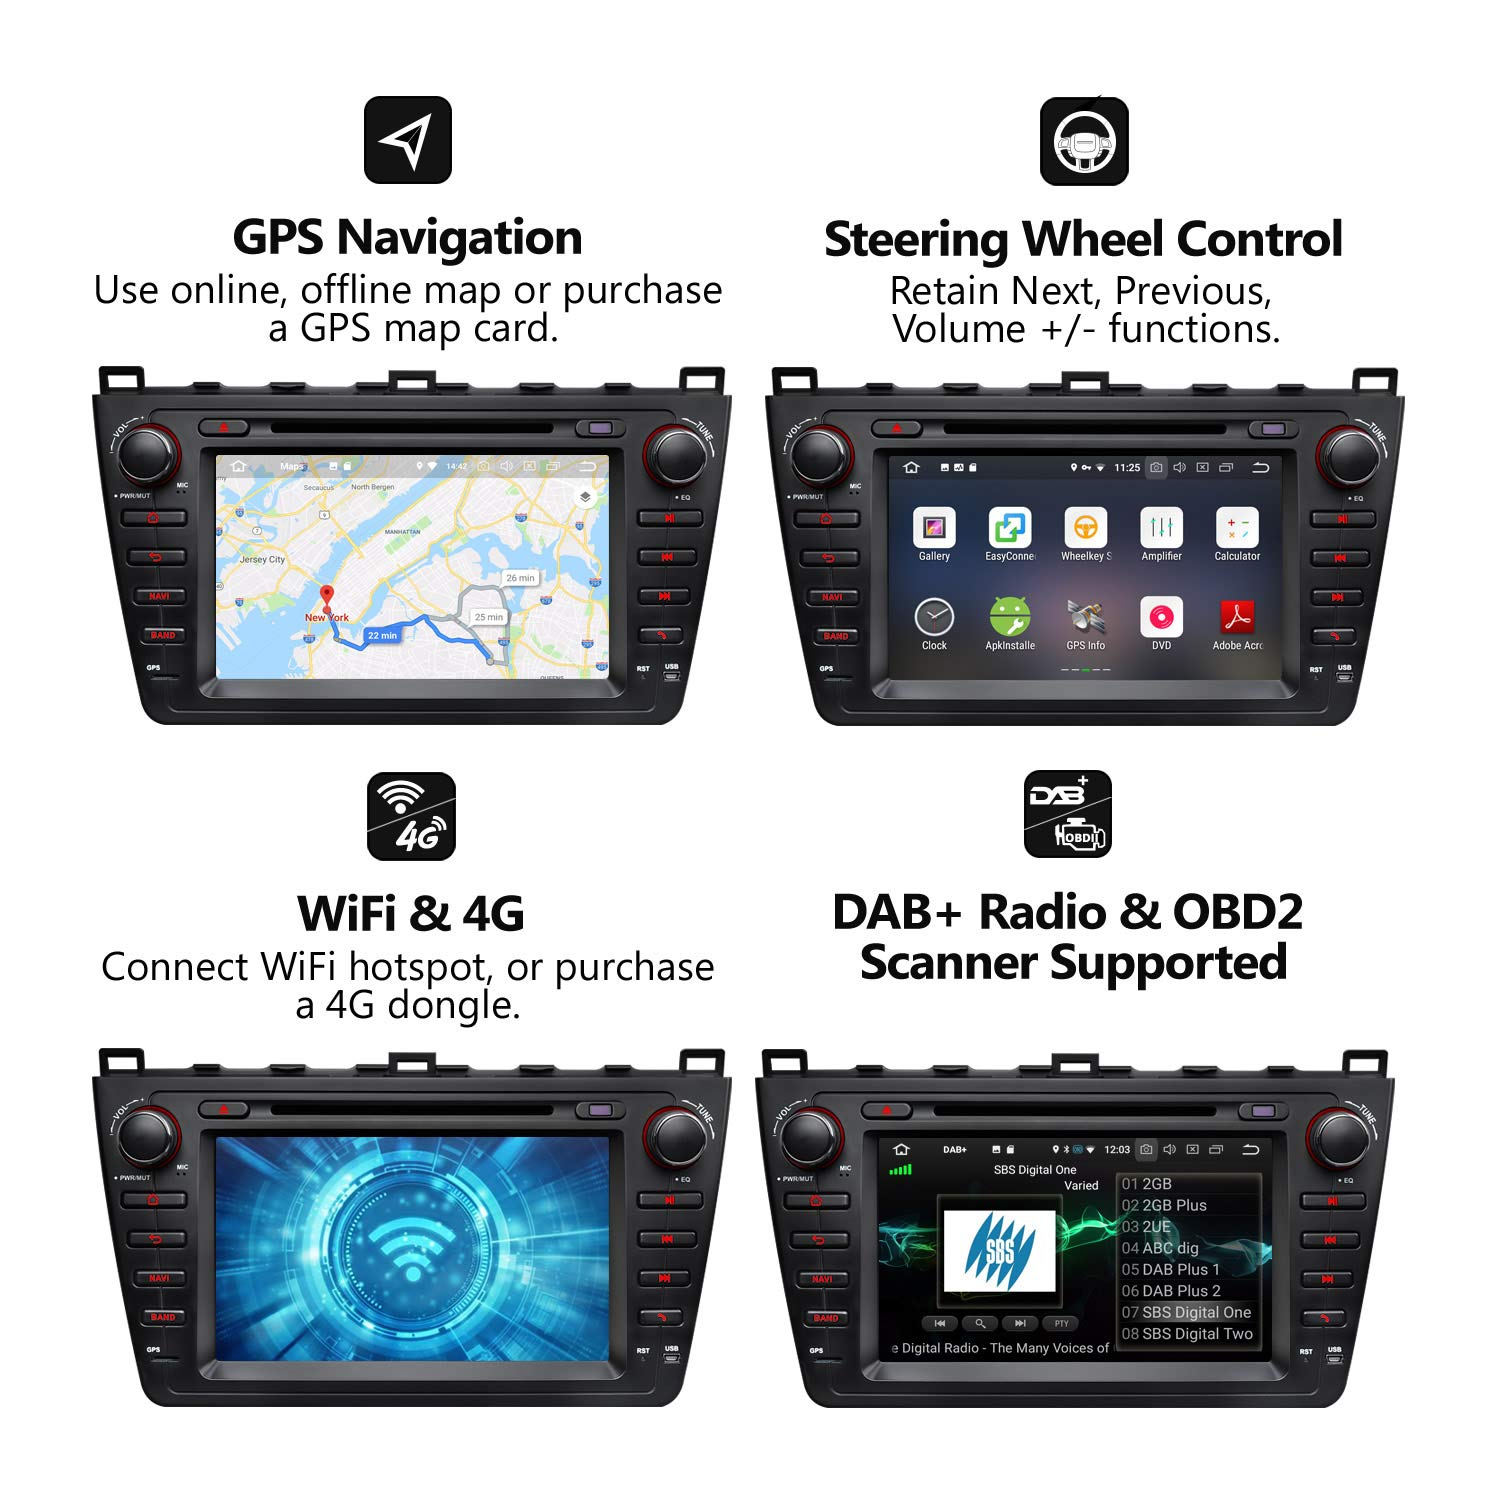 2019 in Dash Car Stereo Radio Eonon Android 8.0 Car Stereo,Touch Screen 4GB RAM 32GB ROM Octa-Core Applicable to BMW 3 Series 1999,2000,2001,2002,2003 and 2004 E46 Support Fastboot-GA9150B